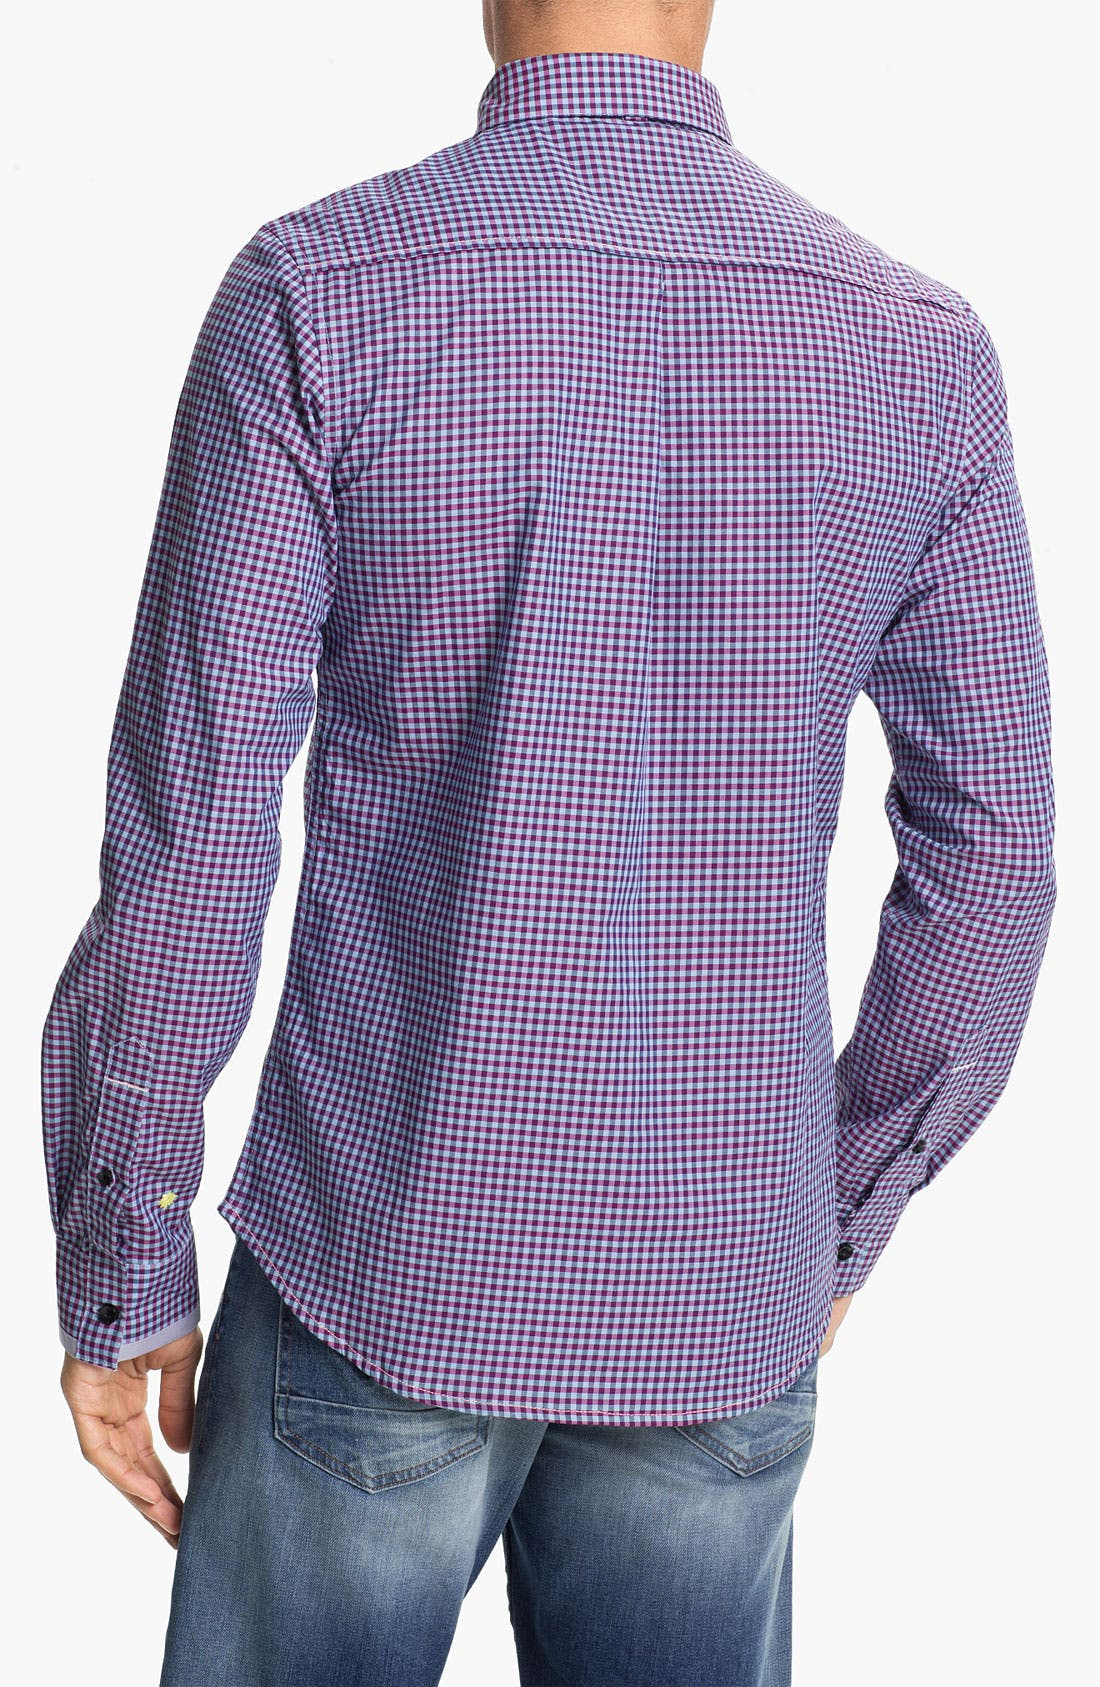 Alternate Image 2  - Descendant of Thieves Gingham Shirt